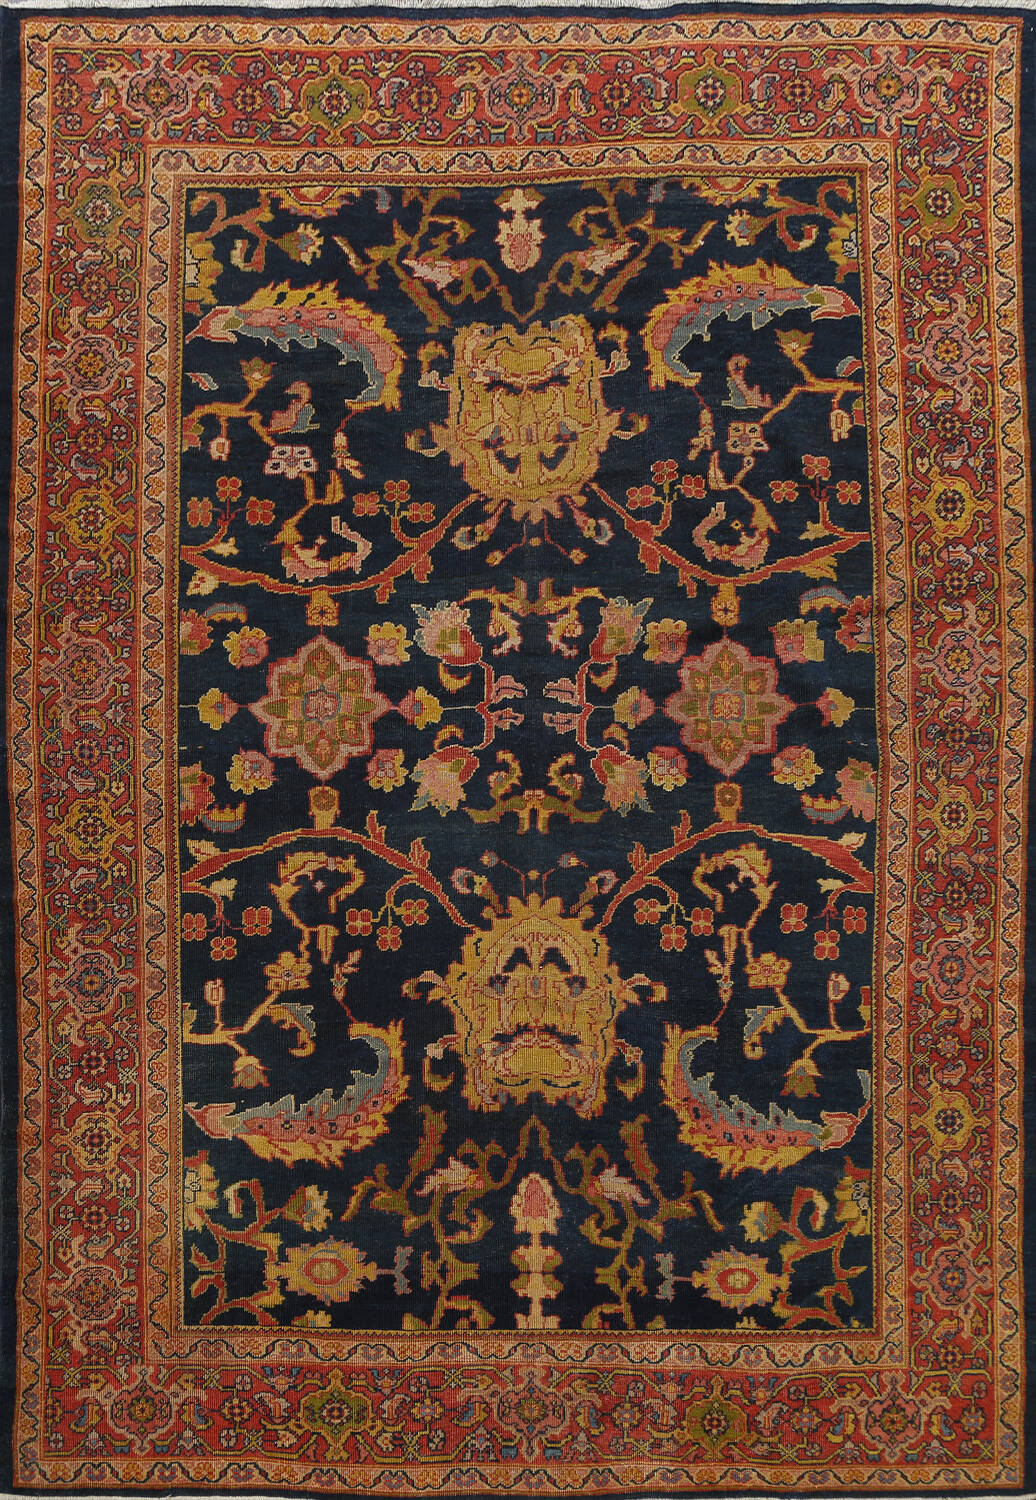 Pre-1900 Antique Vegetable Dye Sultanabad Persian Area Rug 9x10 image 1